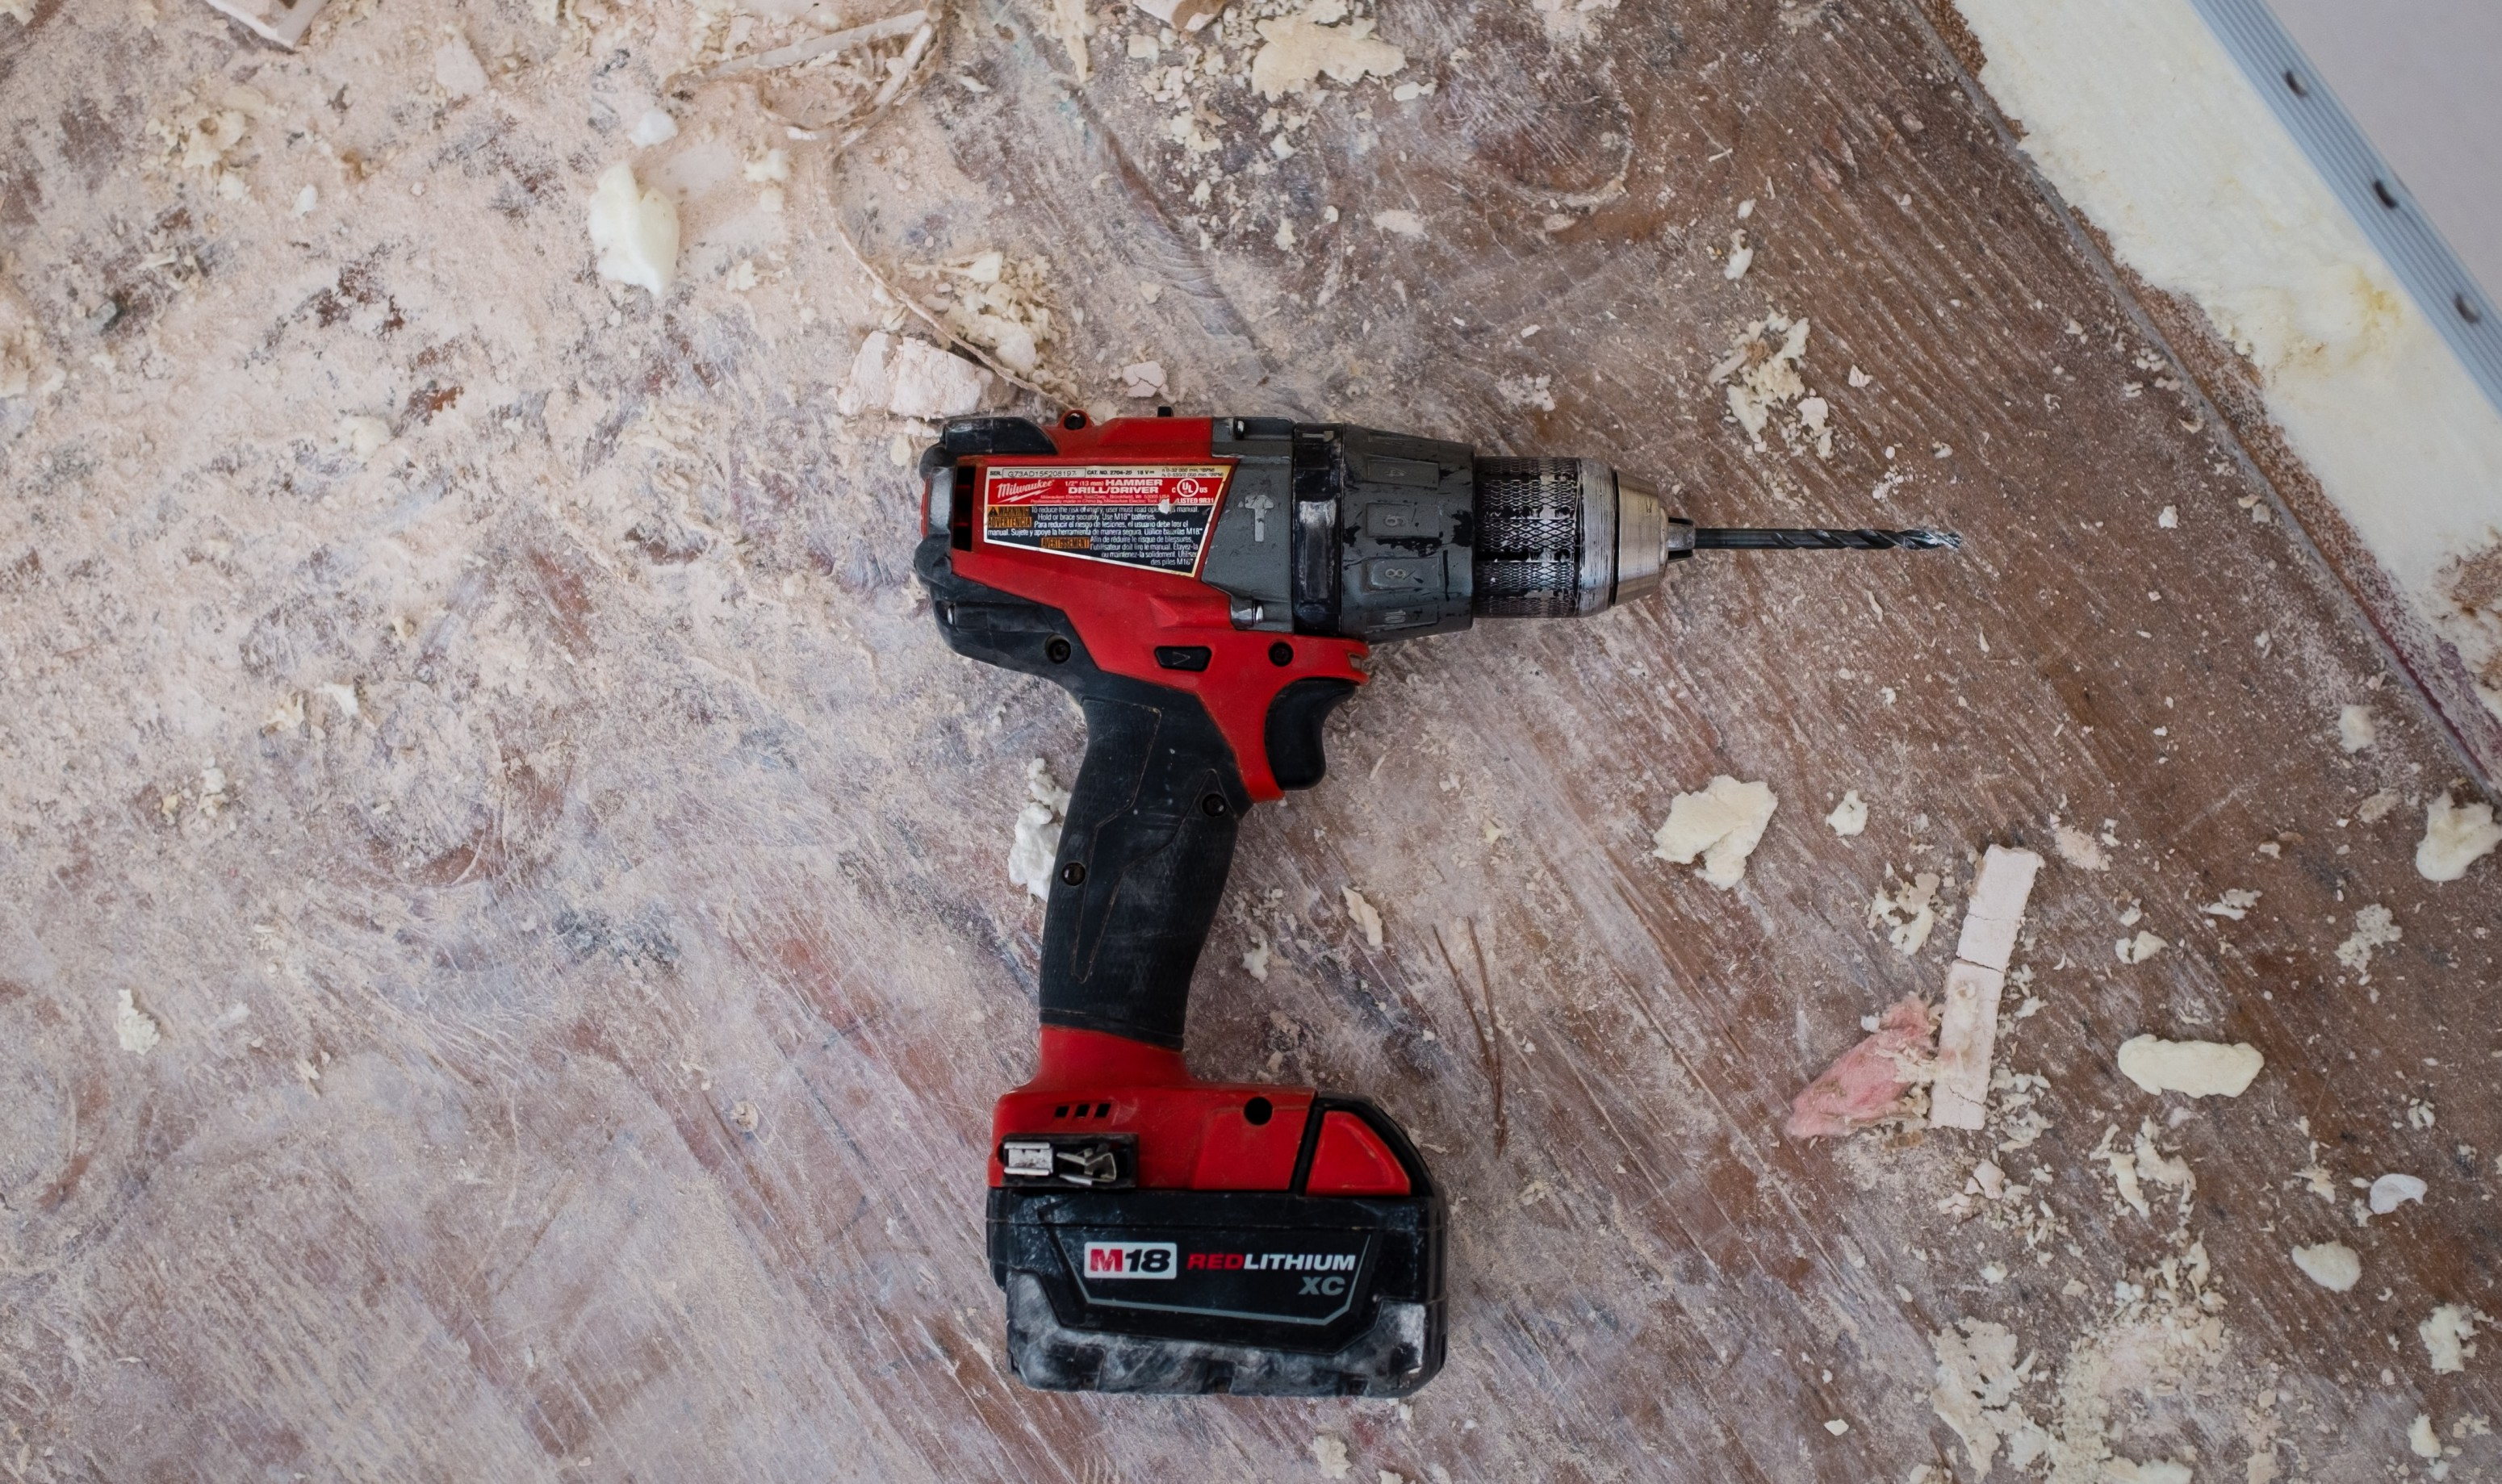 Neon brand drill on a paint covered wooden floor